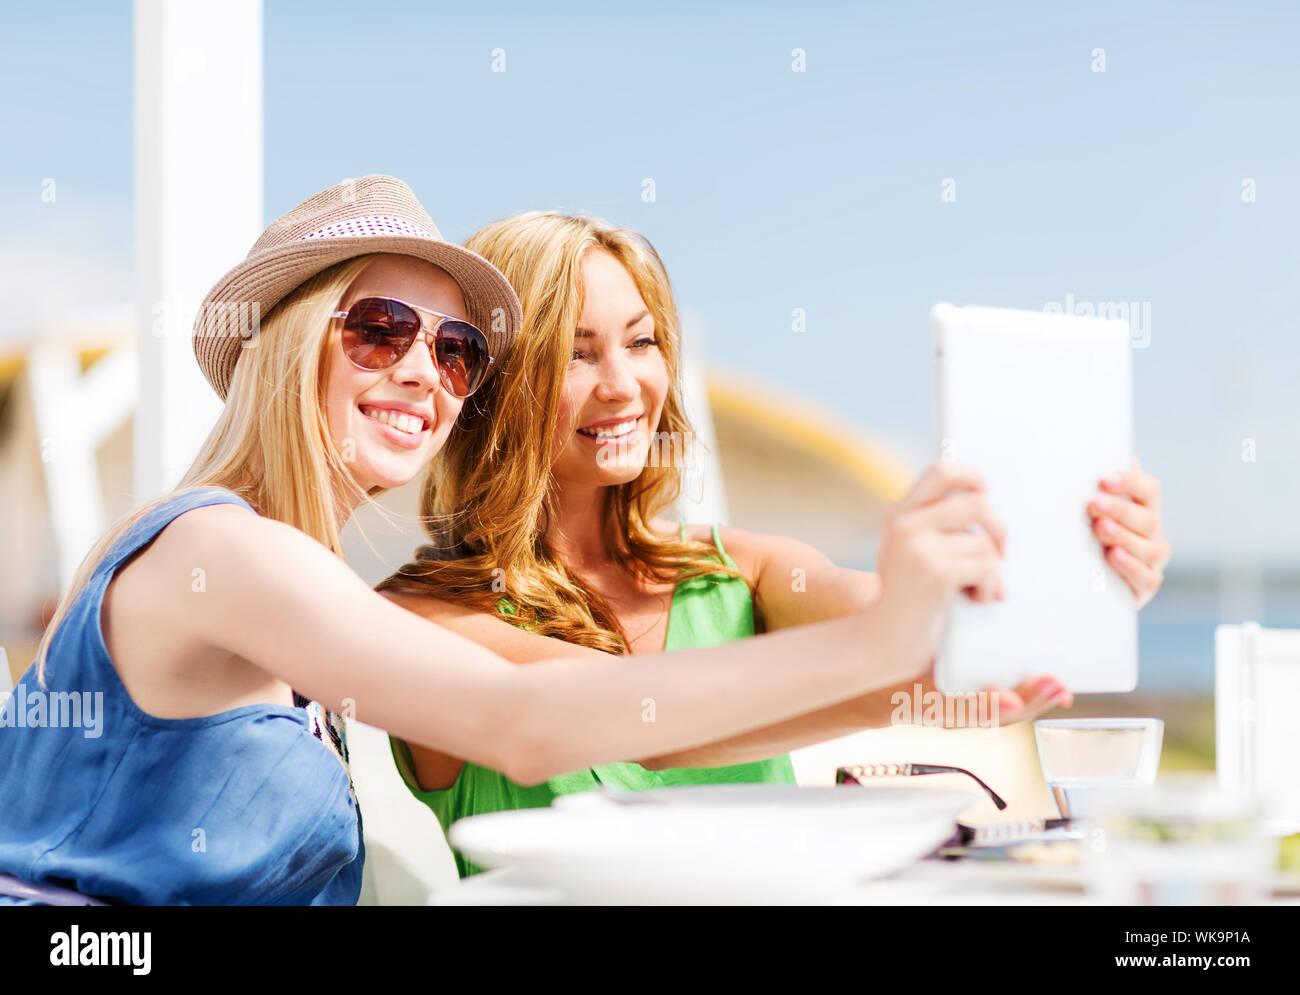 Summer Holidays Vacation And Technology Girls Taking